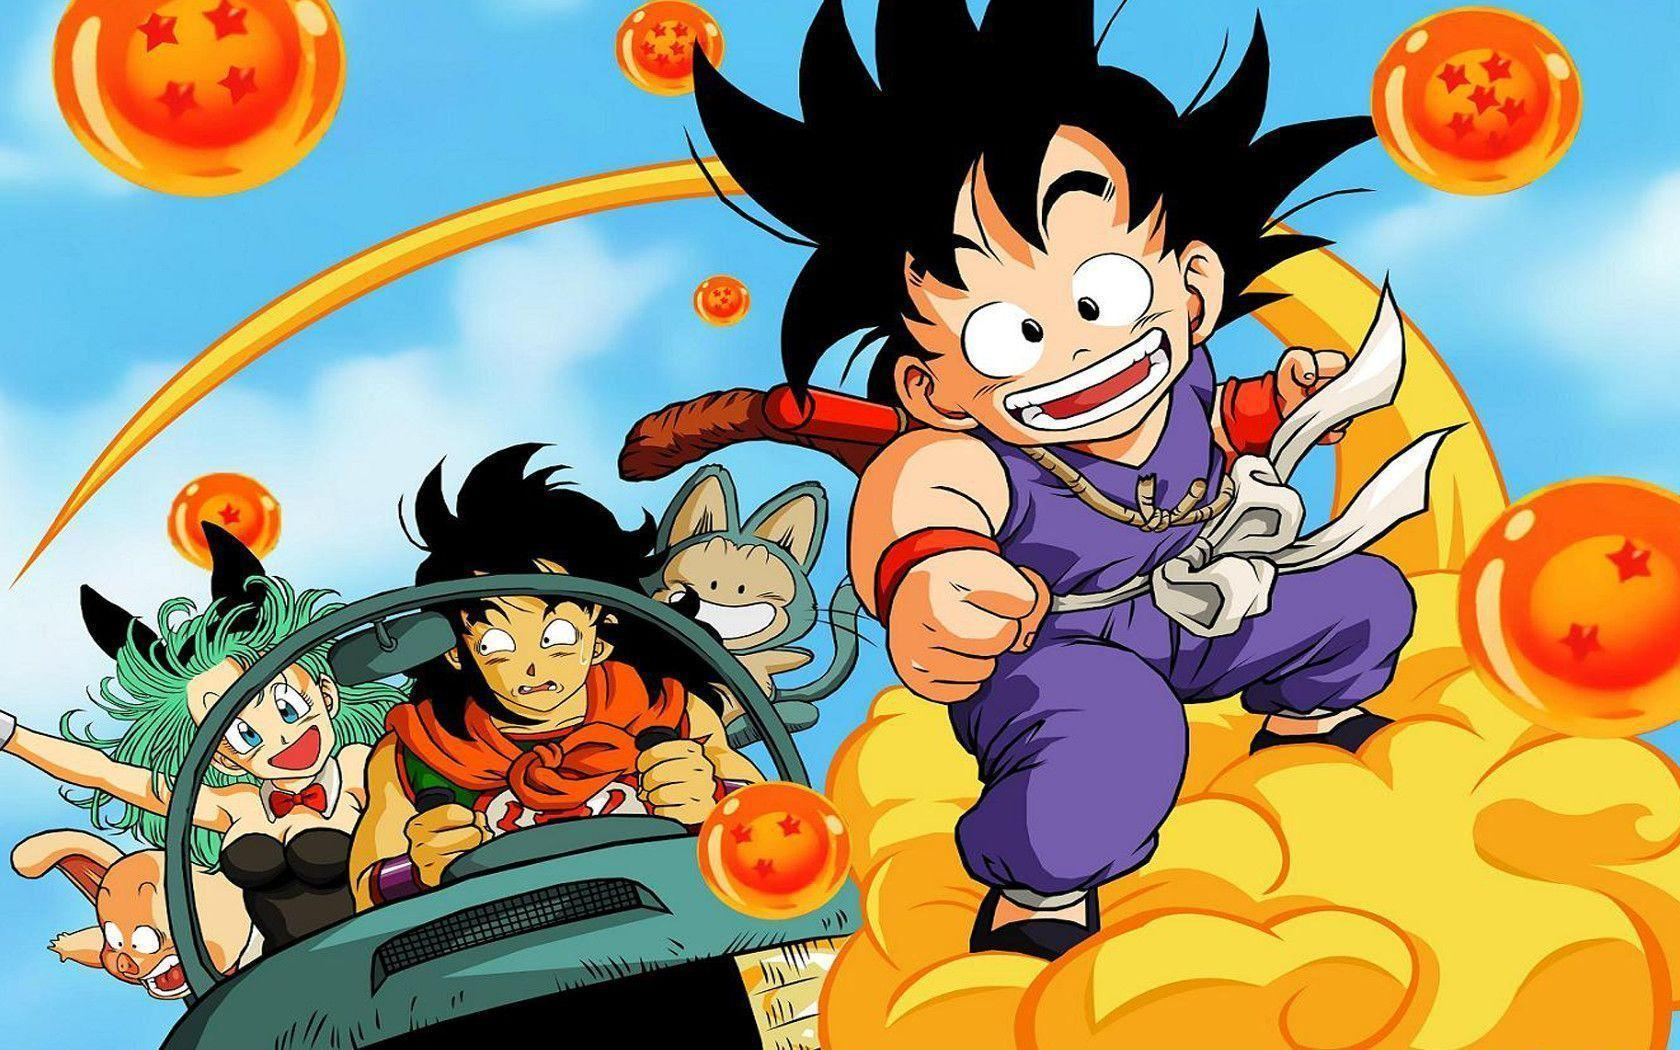 Kid Goku Wallpapers - Wallpaper Cave